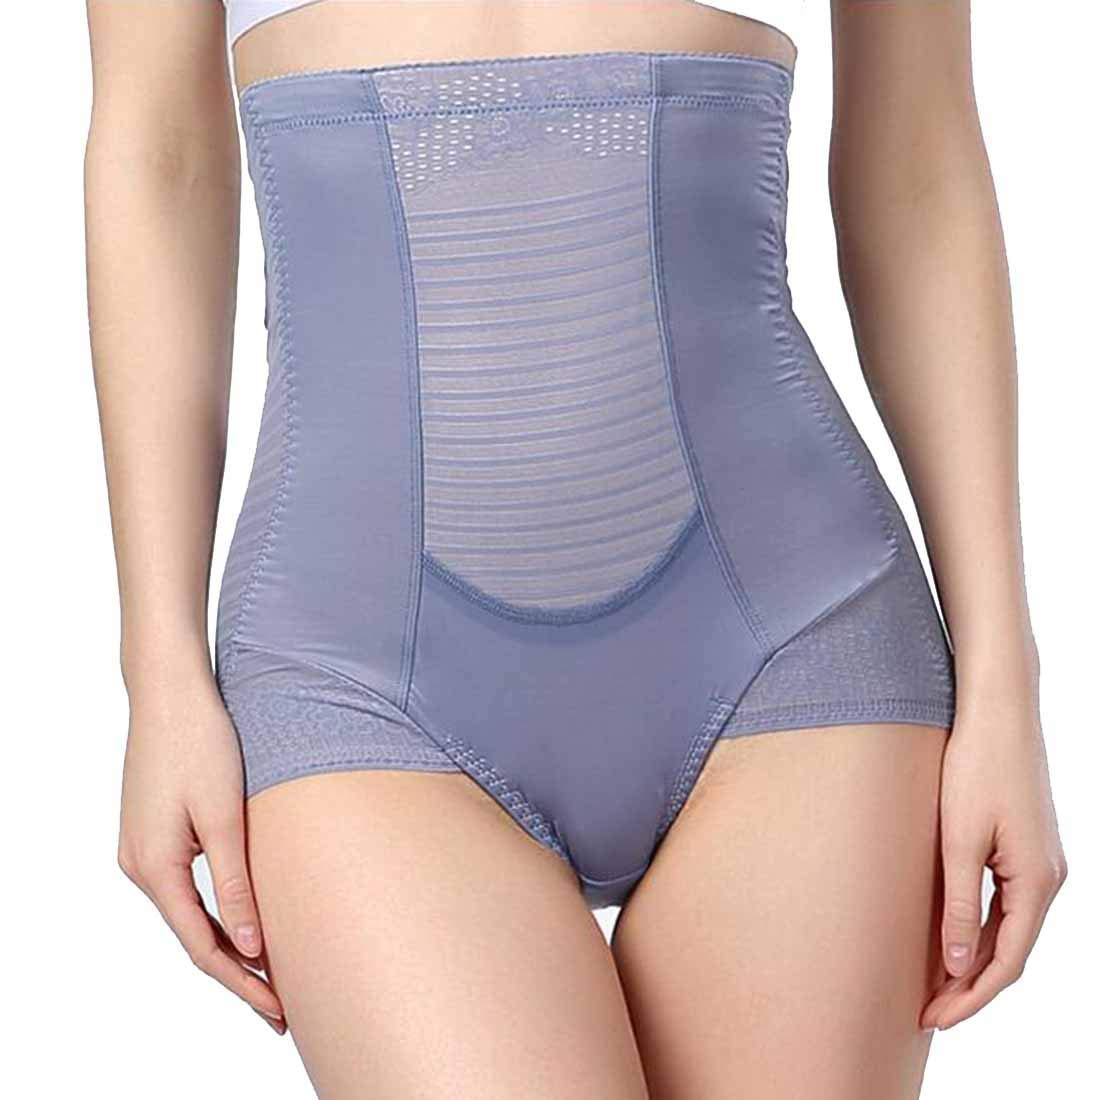 f56e6d718a3 Get Quotations · Lixinsunbu Women s Postpartum High Waist Shaping Corset  Abdominal Pants